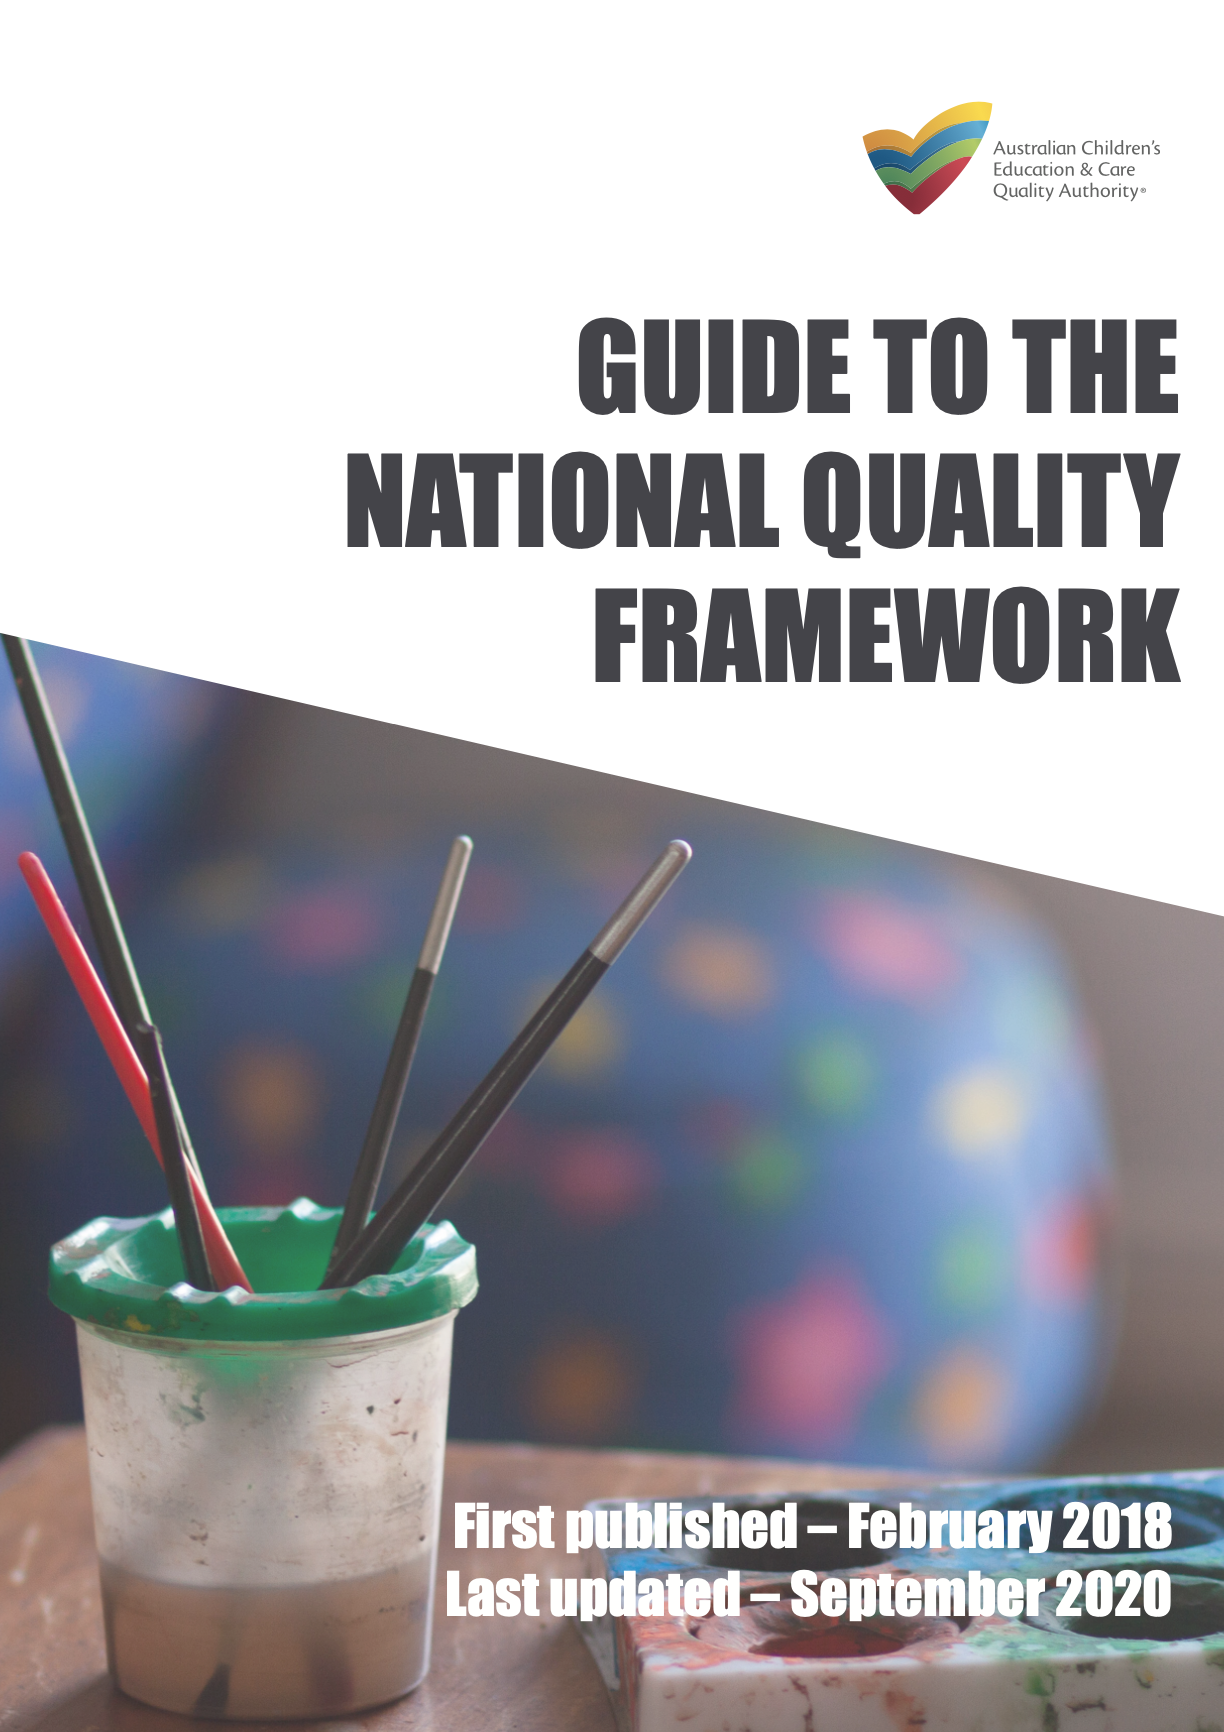 The front page of the Guide to the National Quality Framework